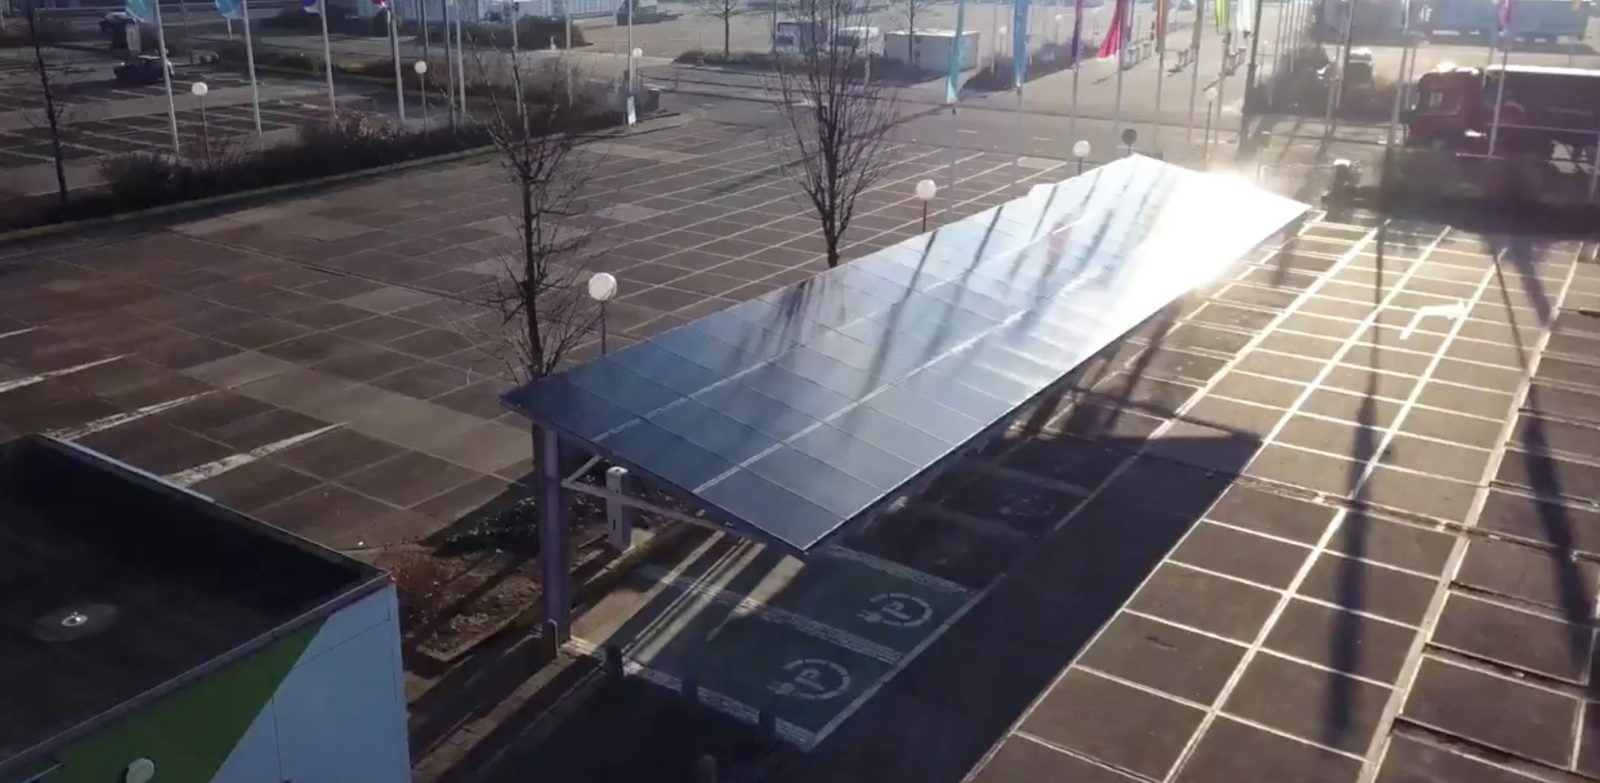 Electric Cars Can Now Charge On Sunlight Day And Night With Tesla Packs At New Smart Solar Charging Station